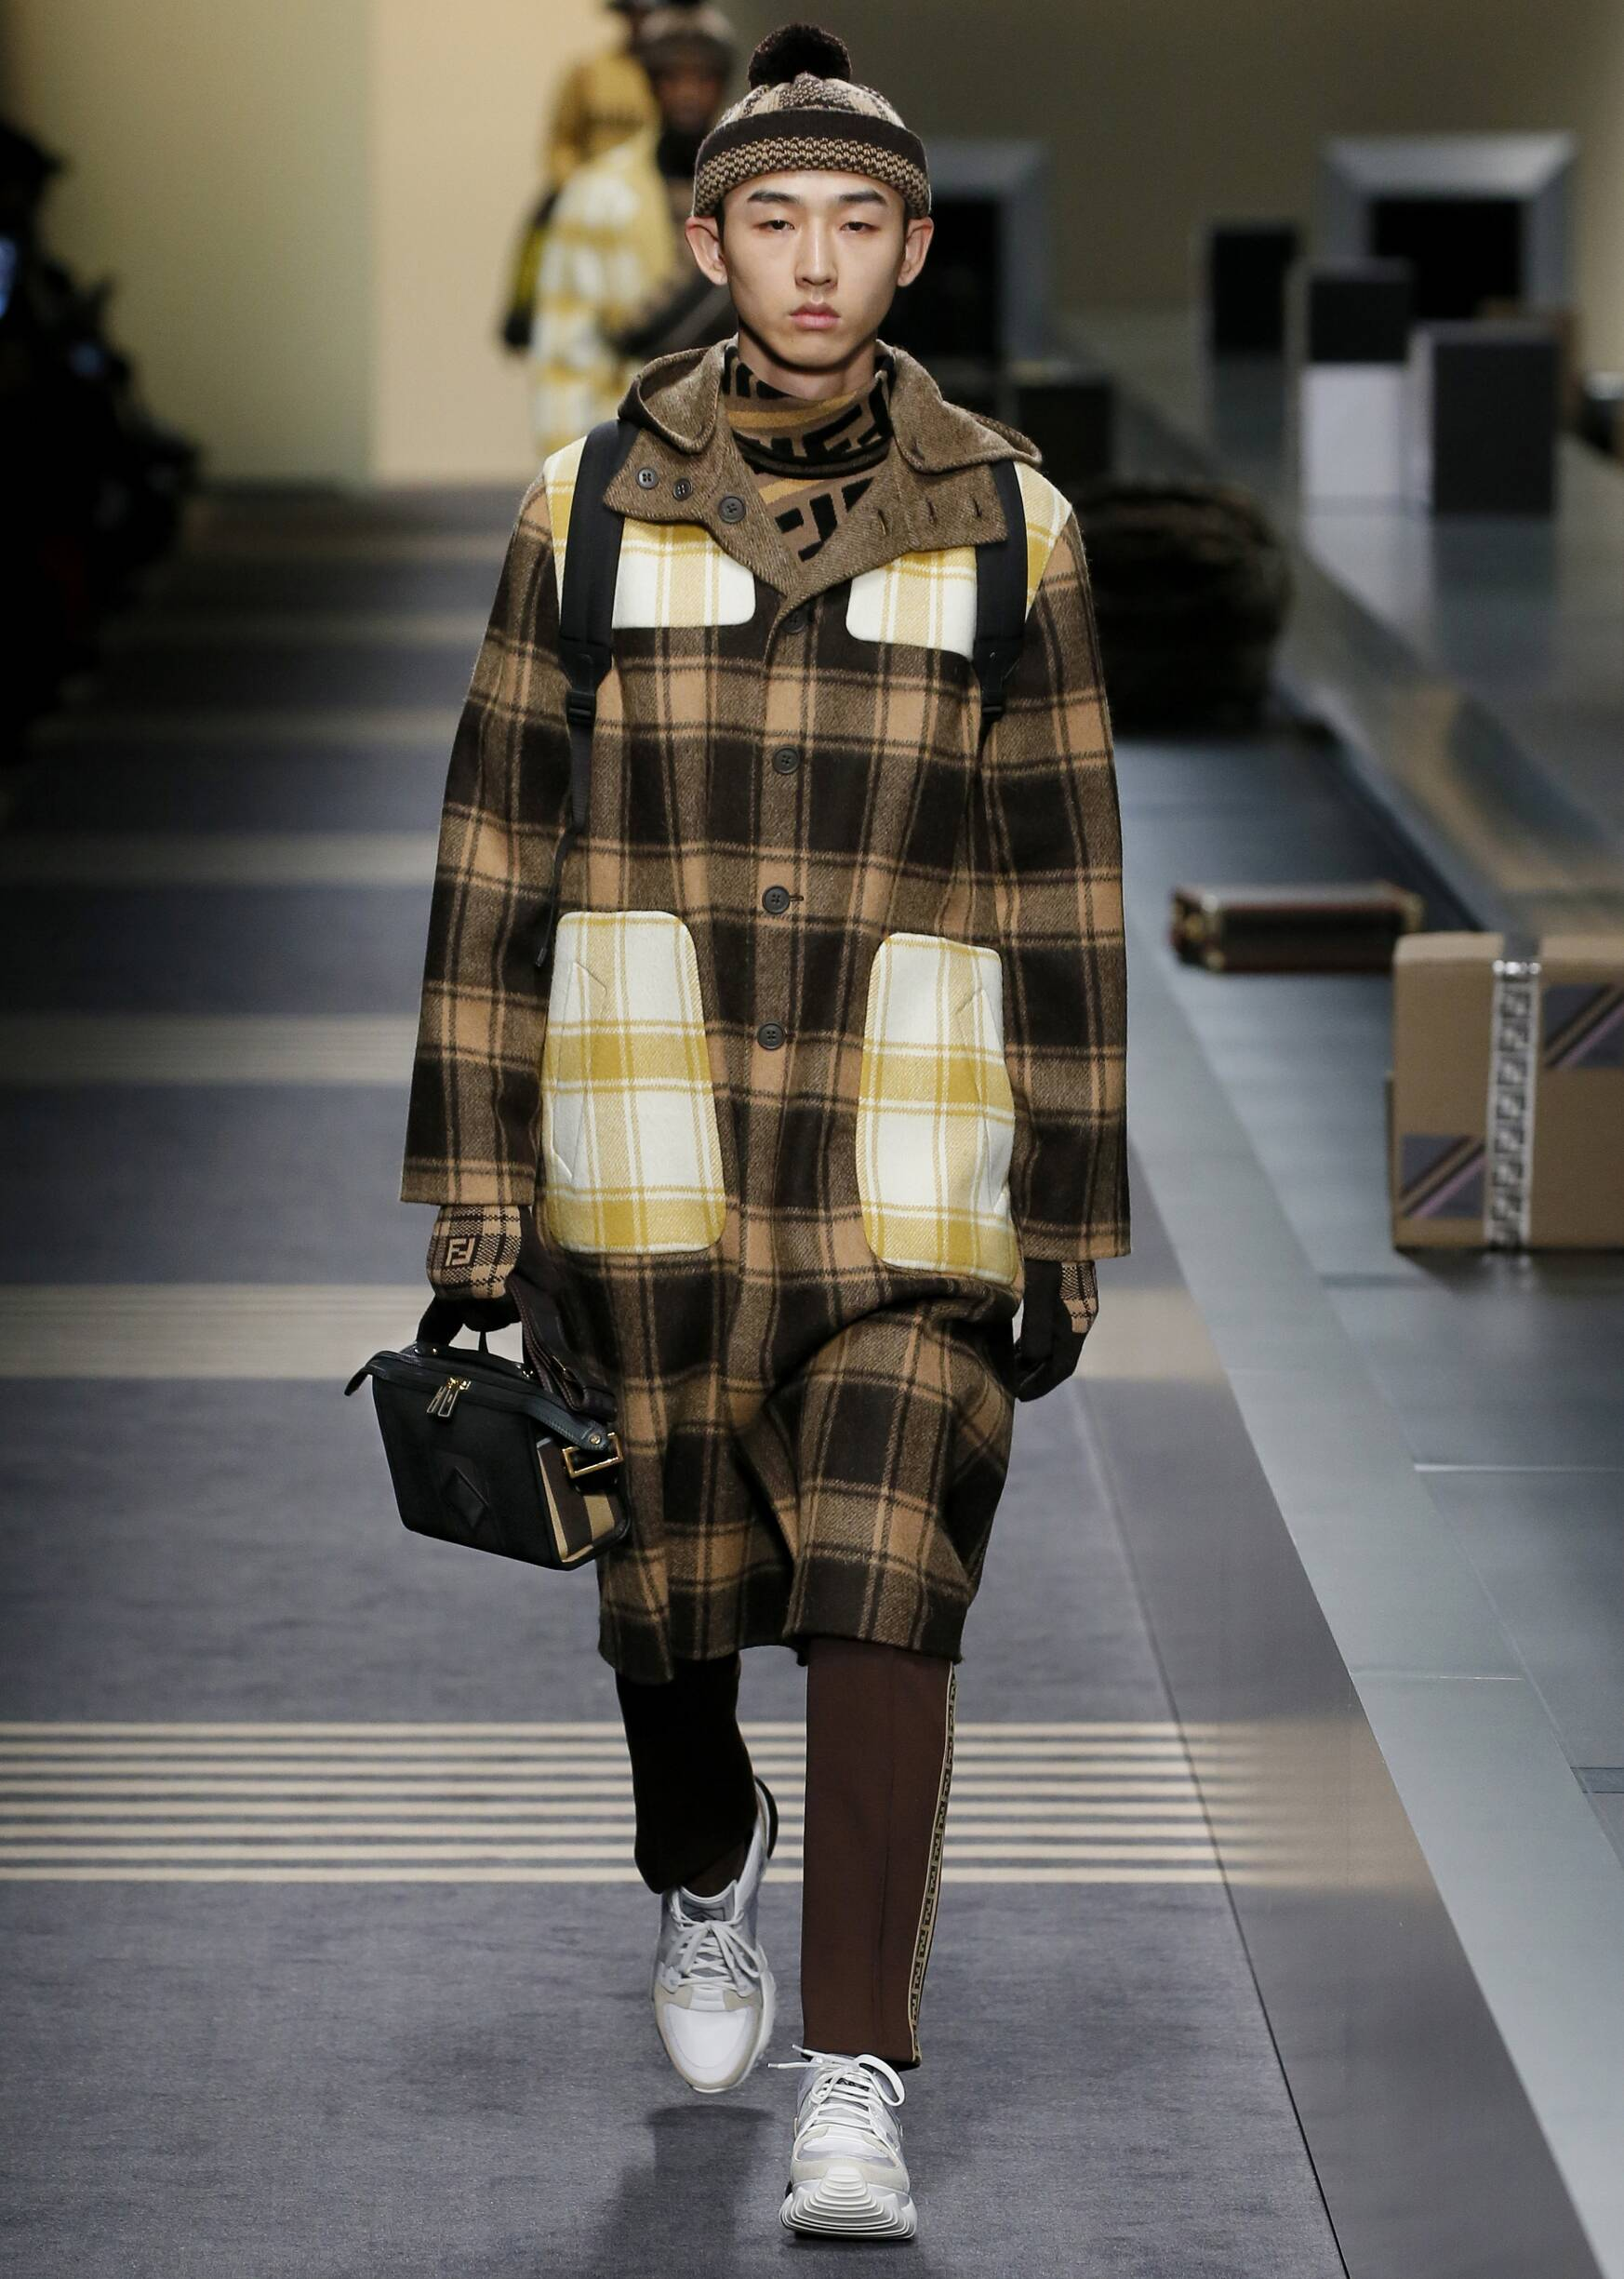 Catwalk Fendi Man Fashion Show Winter 2018